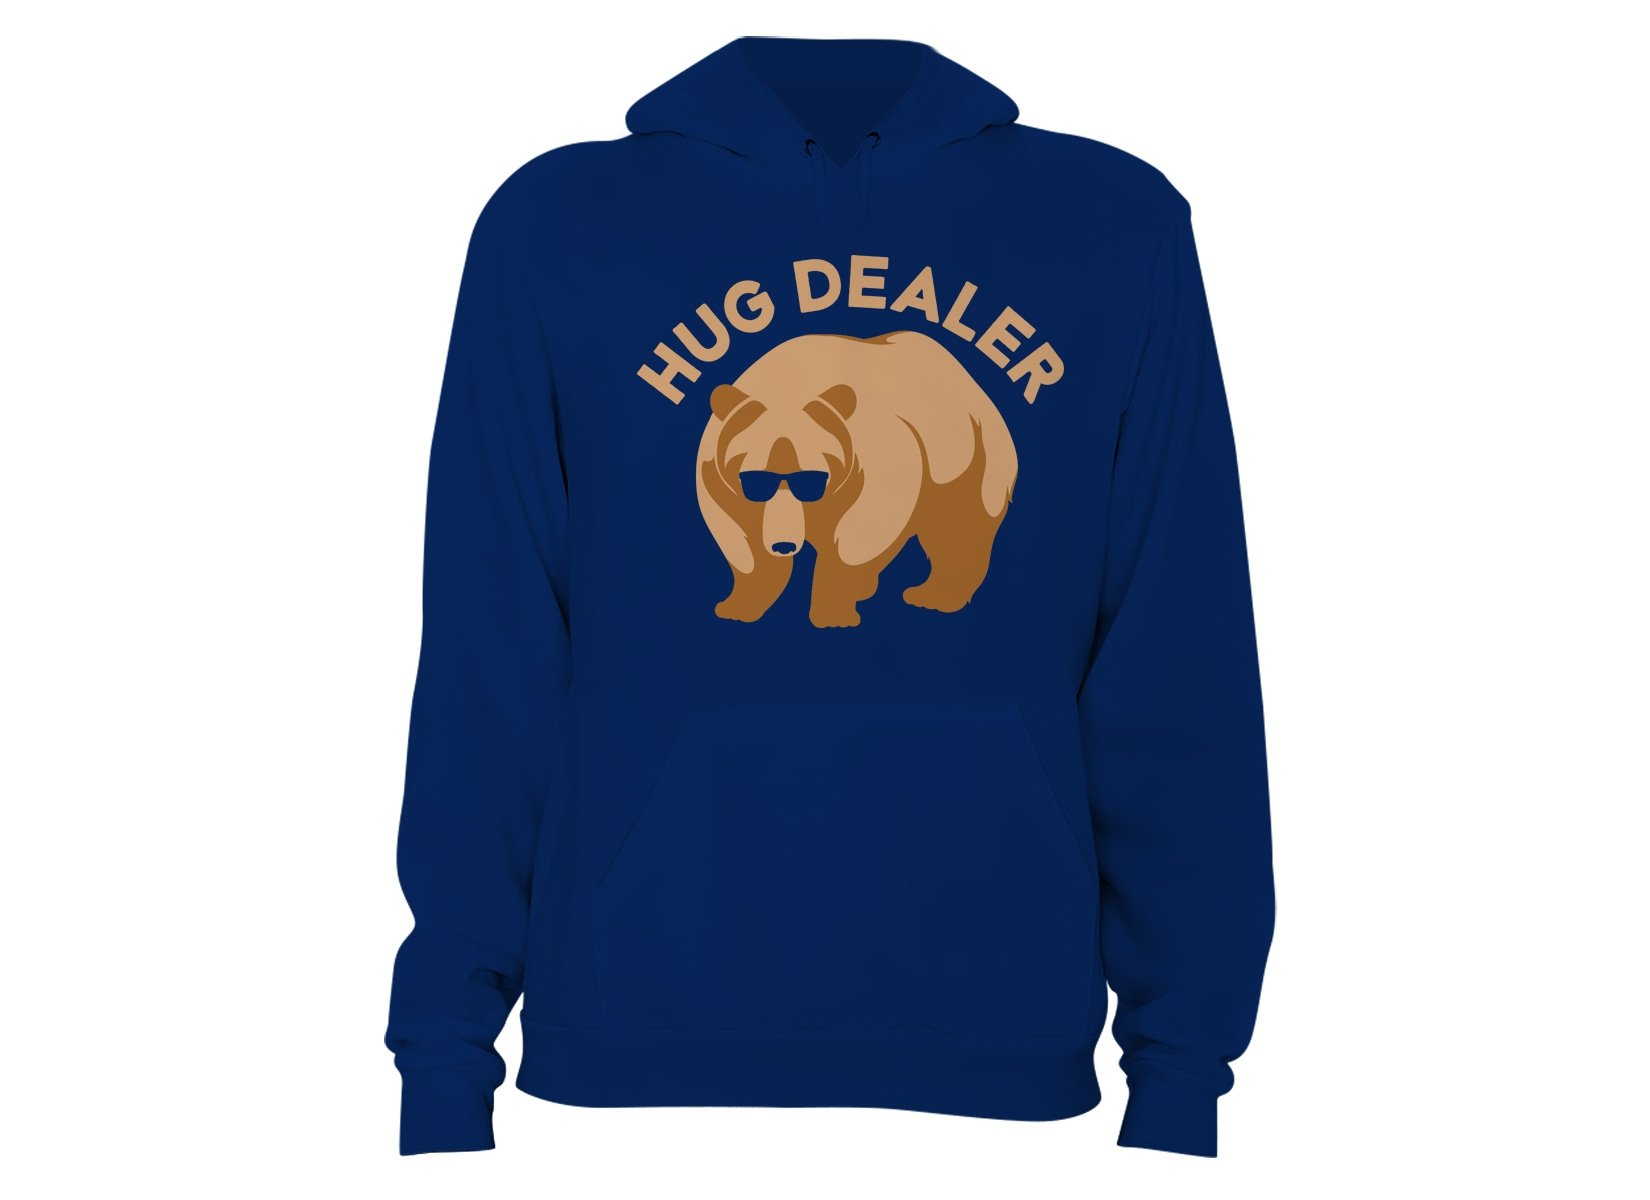 Hug Dealer on Hoodie